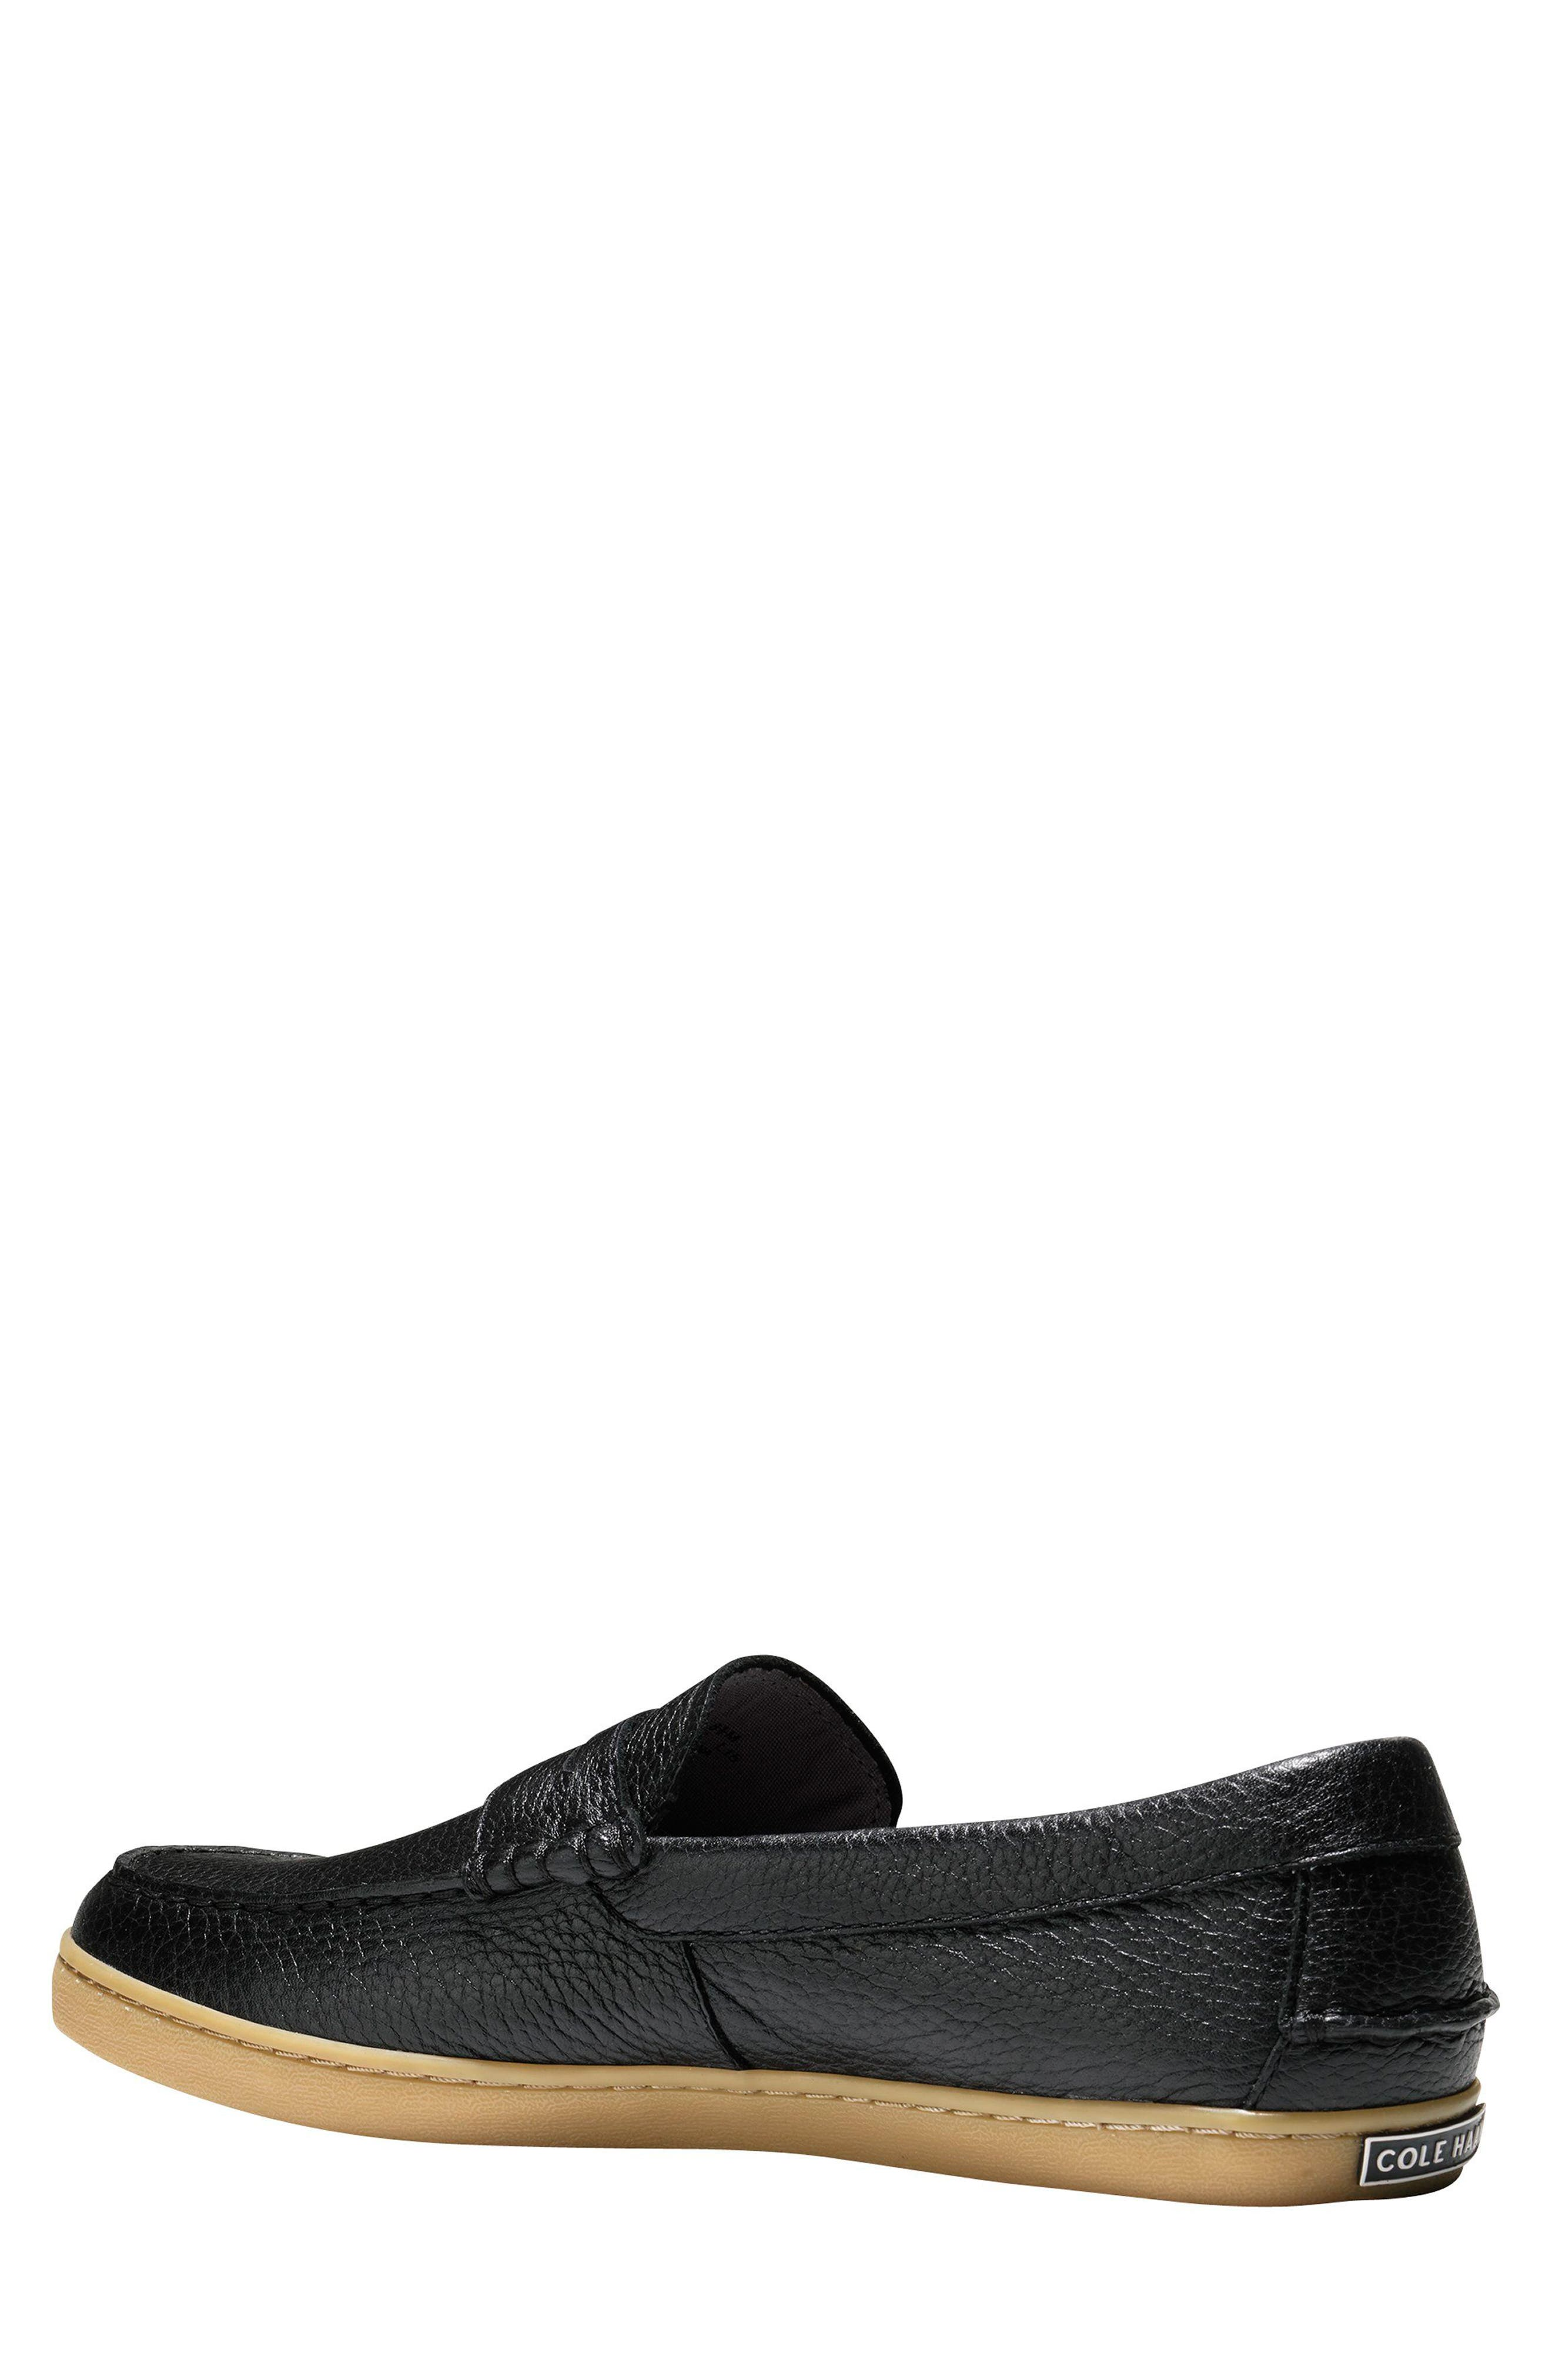 'Pinch Weekend' Penny Loafer,                             Alternate thumbnail 3, color,                             Black Tumble Leather